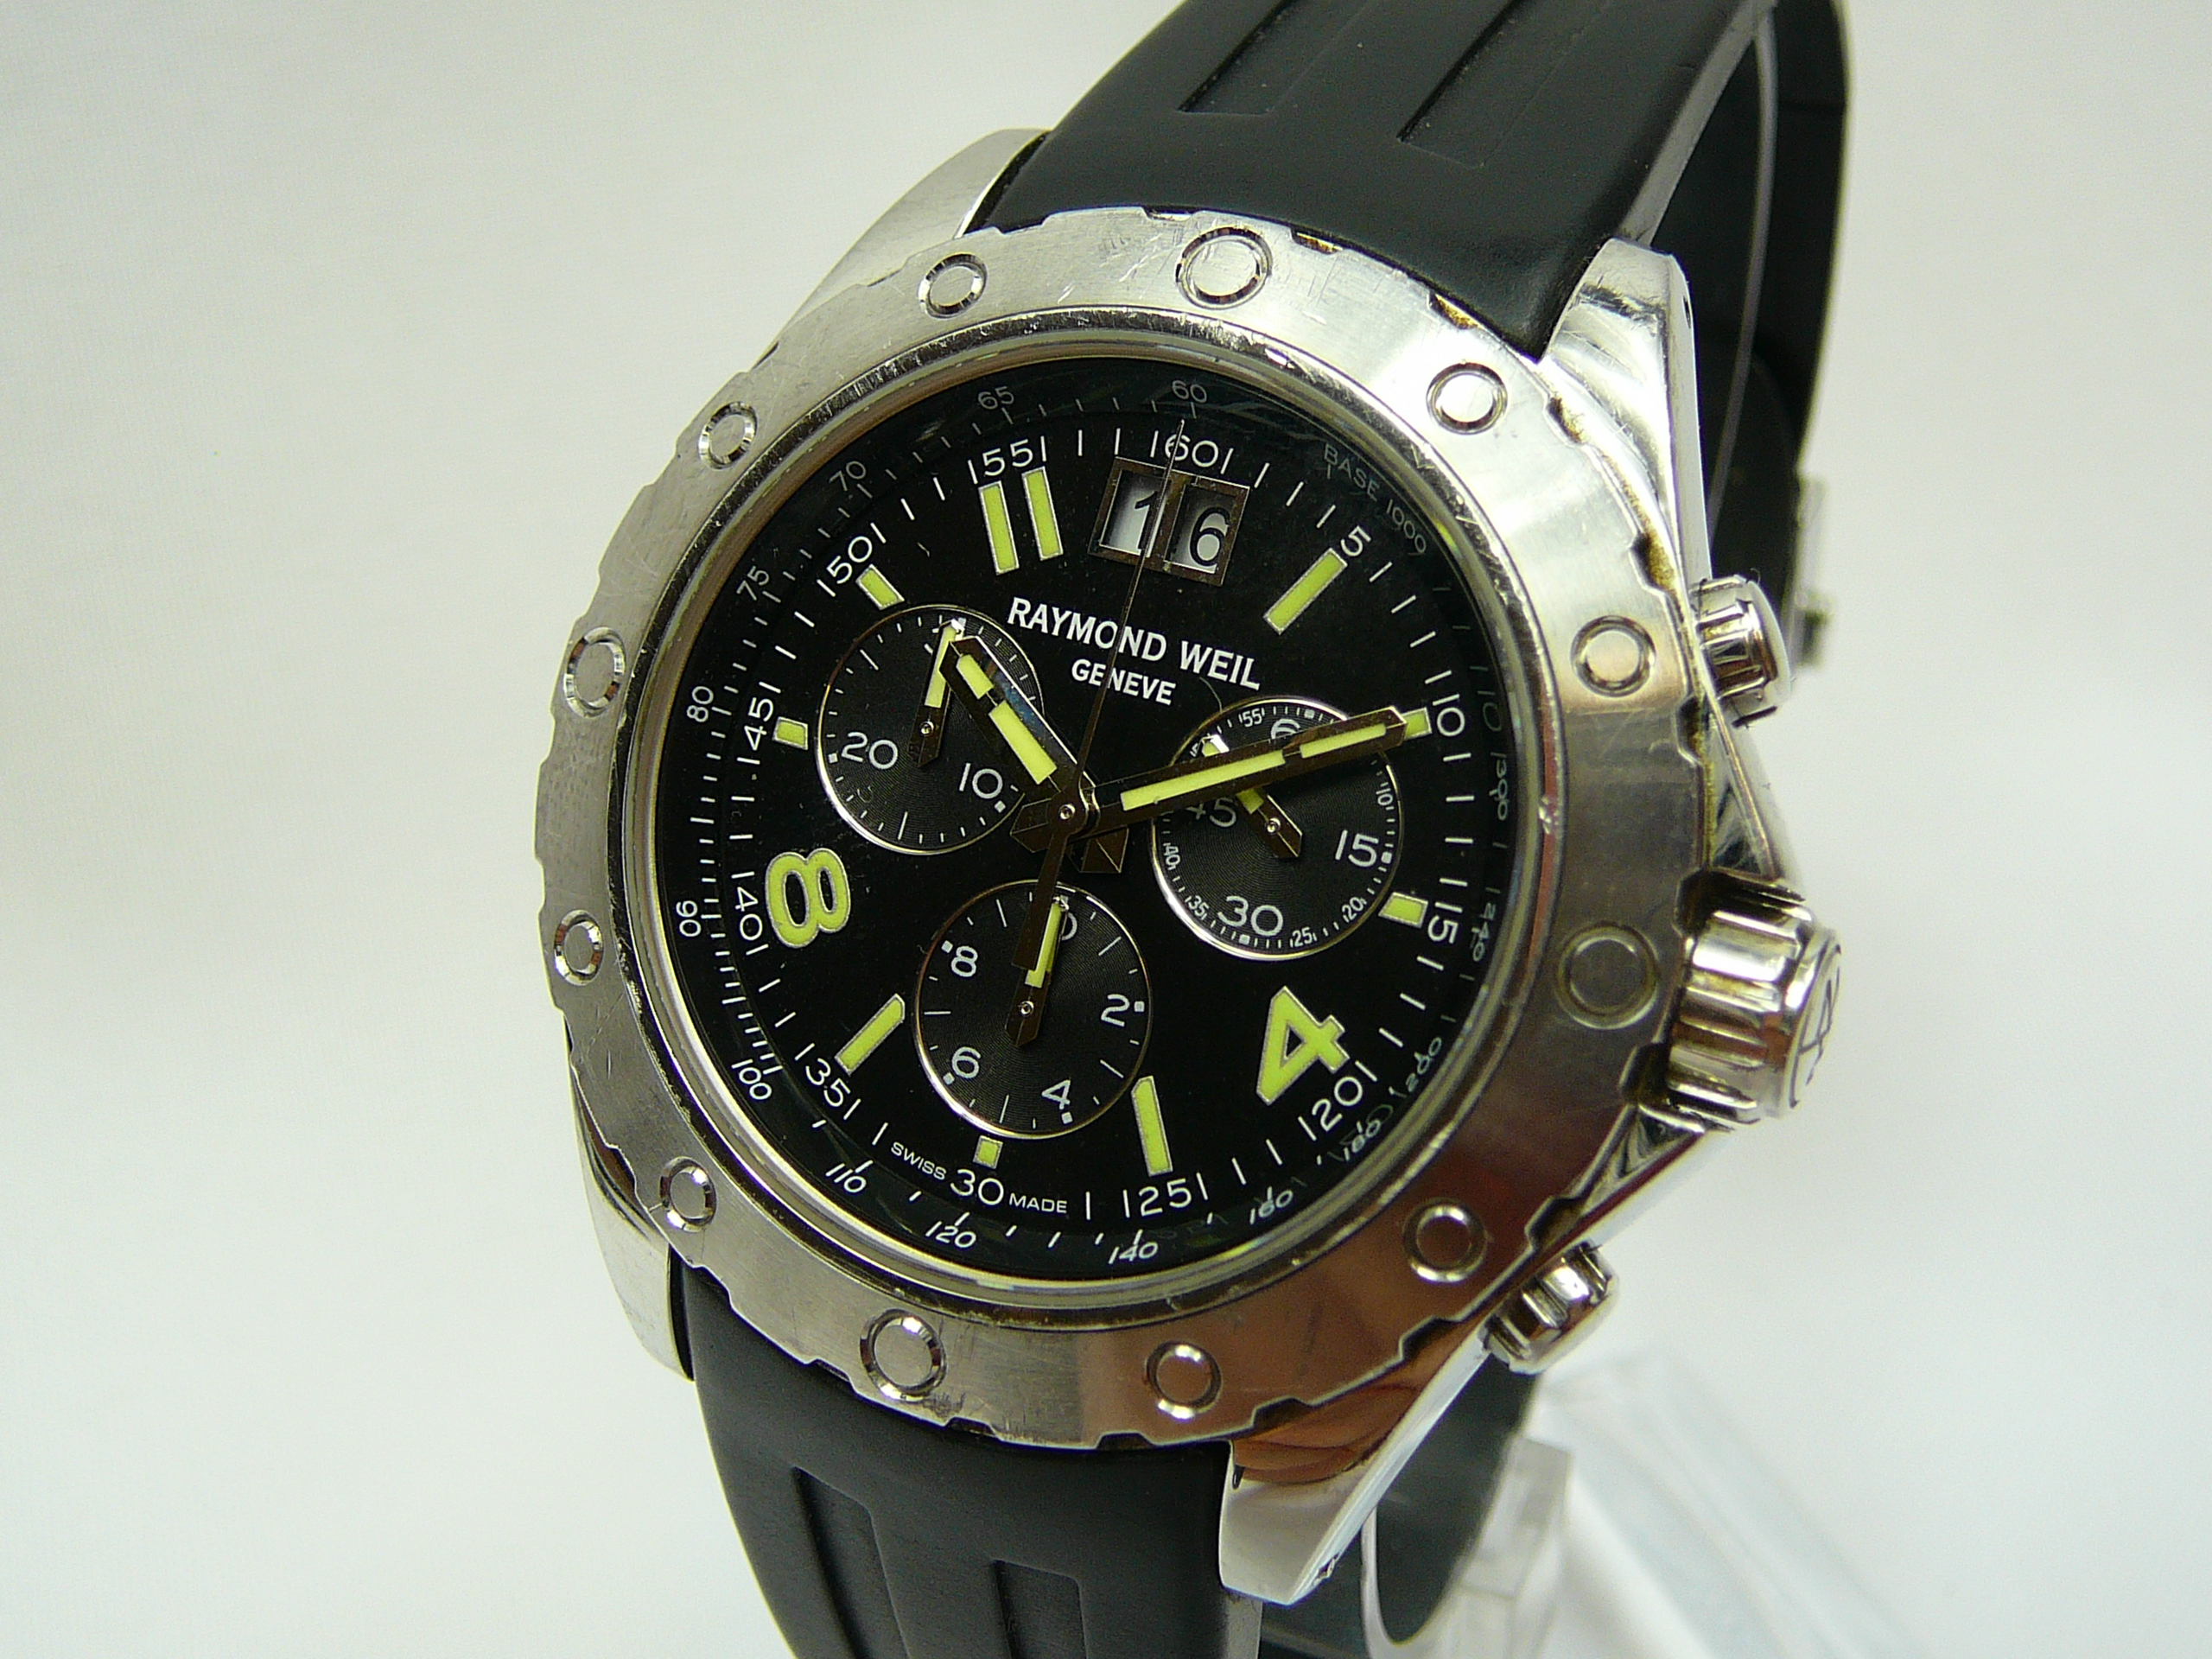 Gents Raymond Weil Wrist Watch - Image 2 of 3